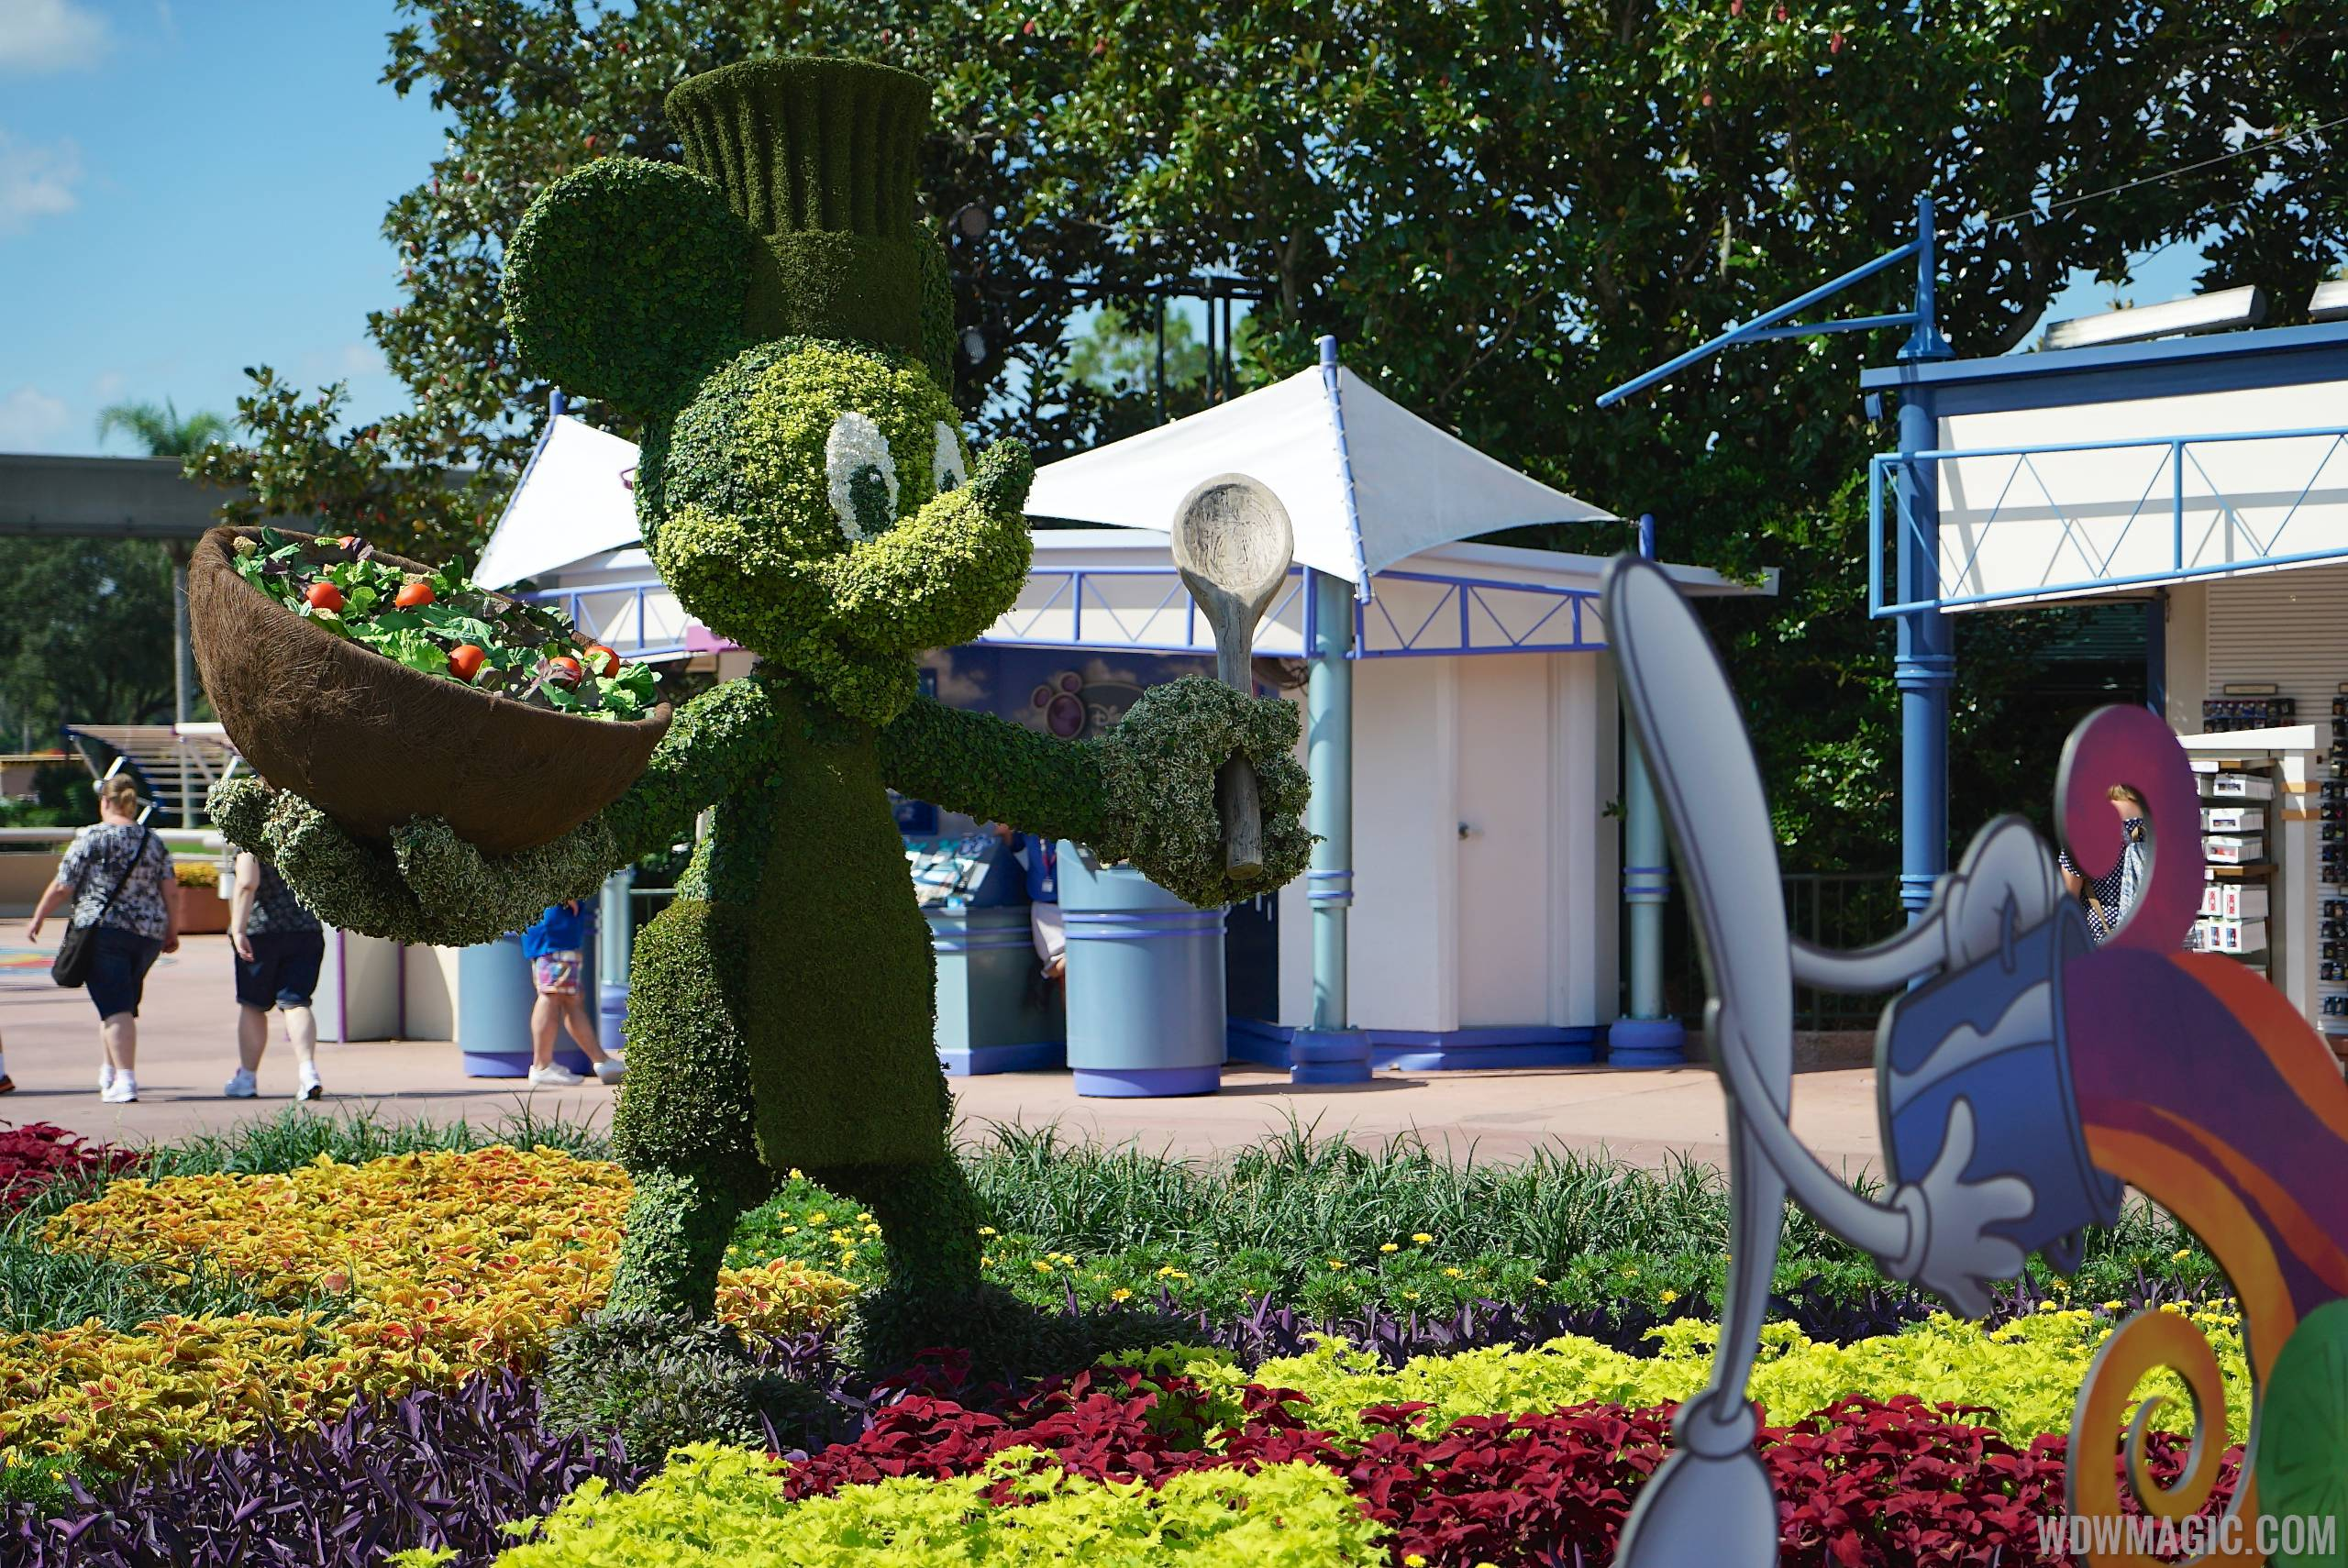 2014 Epcot Food and Wine Festival decor